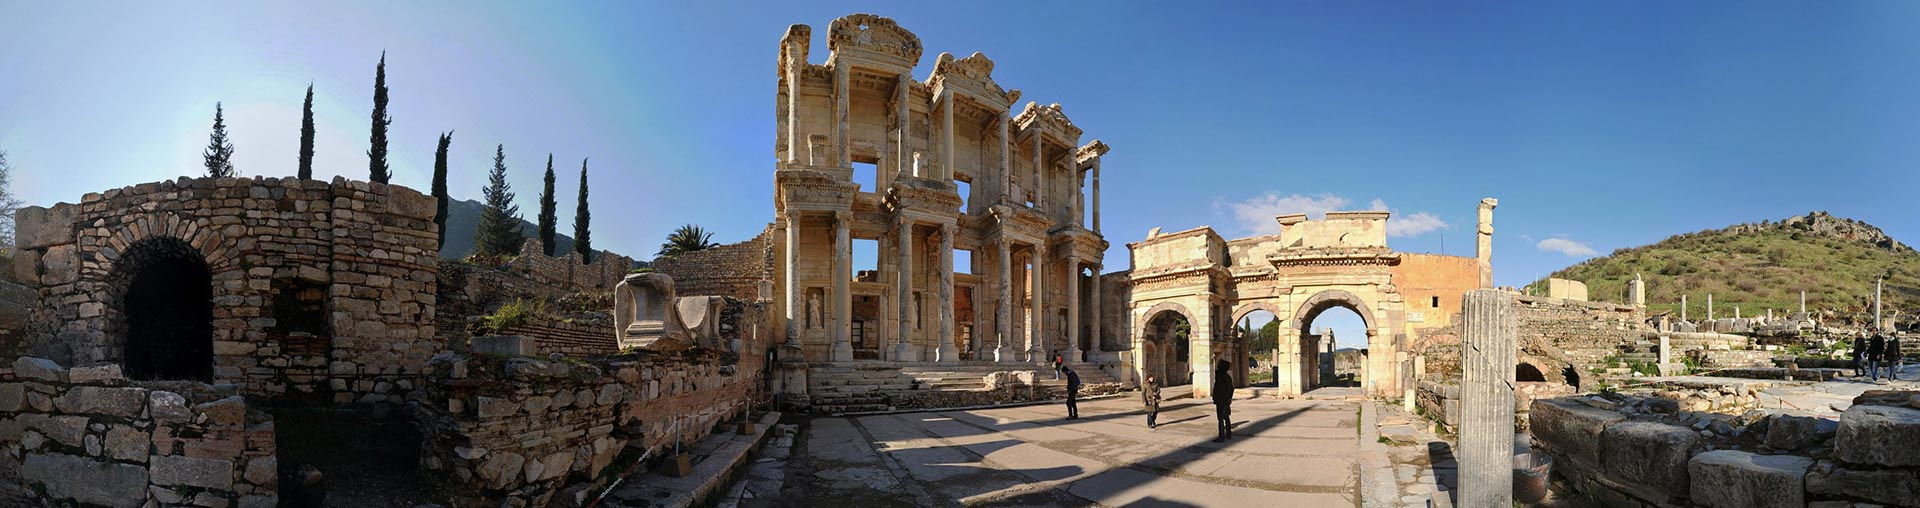 ephesus monuments turkey